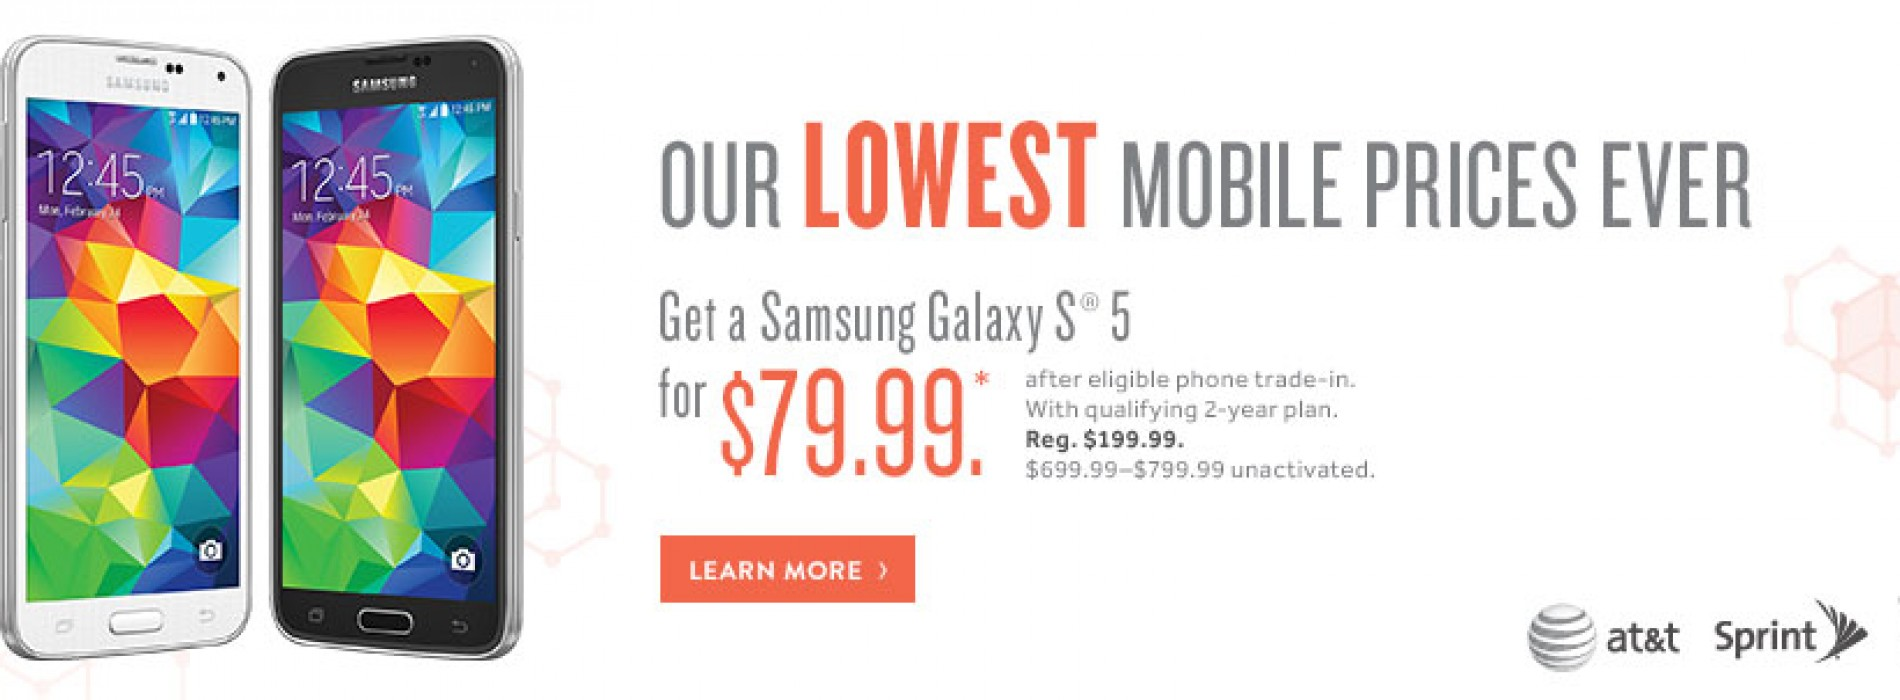 Radio Shack offering Samsung Galaxy S5 for $79 with trade-in